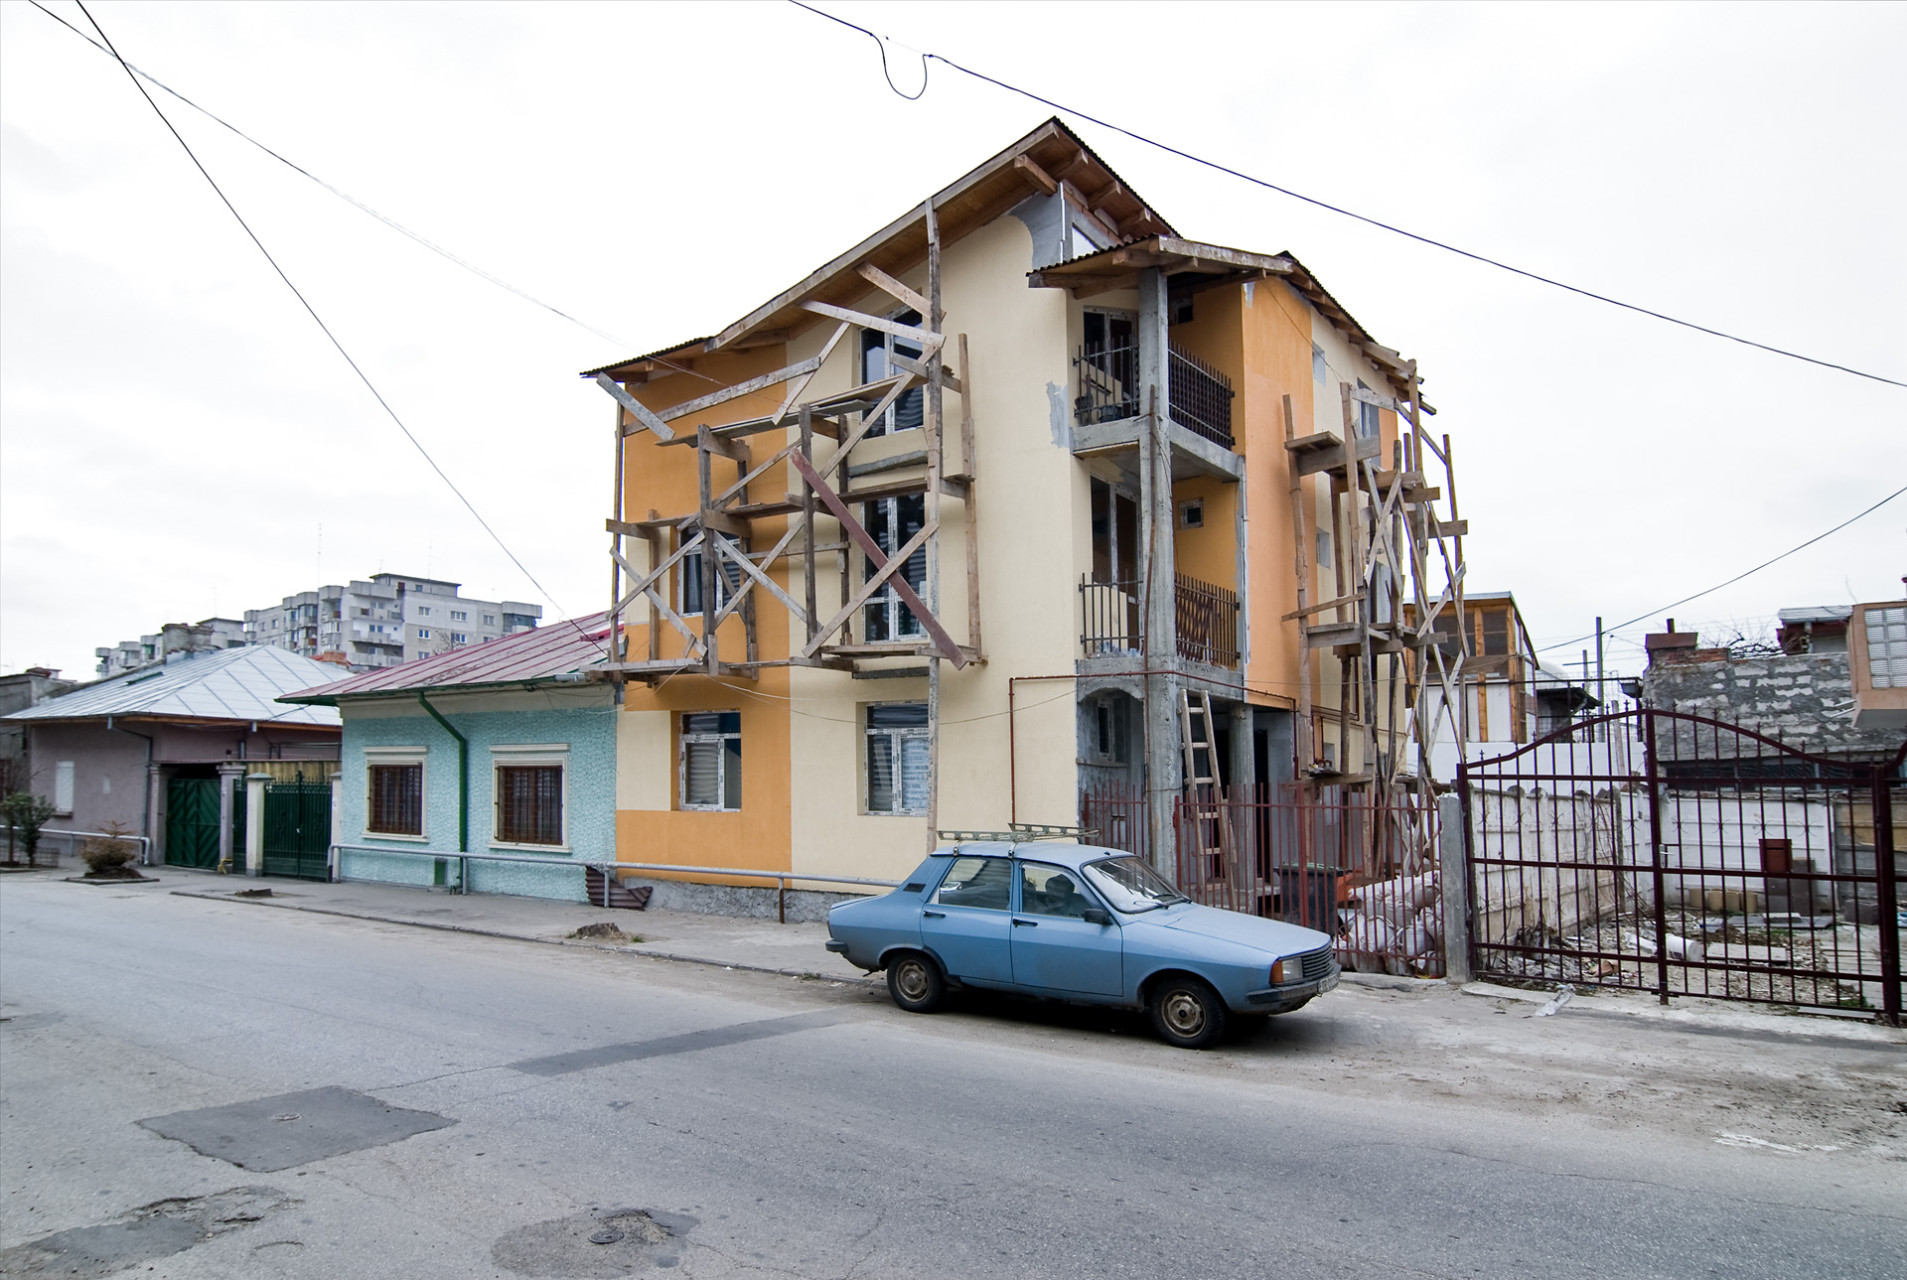 Rumania, bucarest 2007. Ion Nutu. Dacia in front of new building